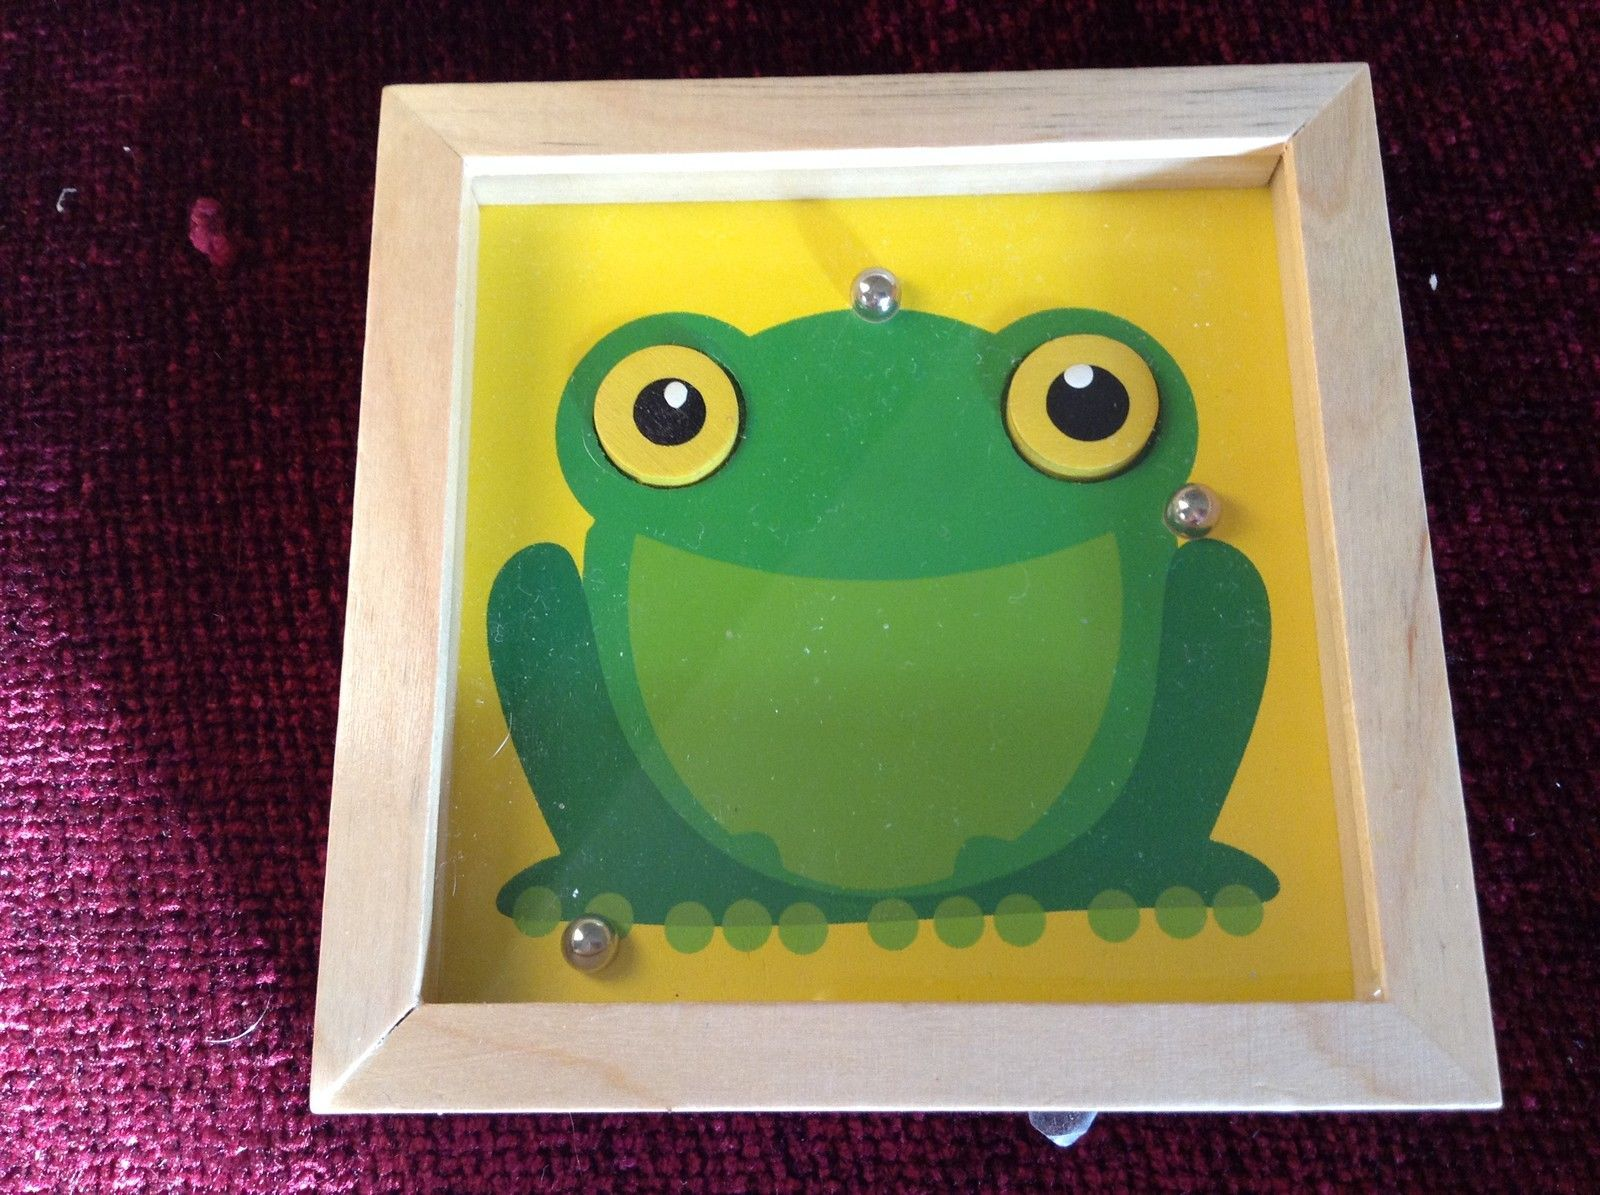 Frog Tip and Tilter Ball Puzzle Collectably Cute Animal Games House of Marbles